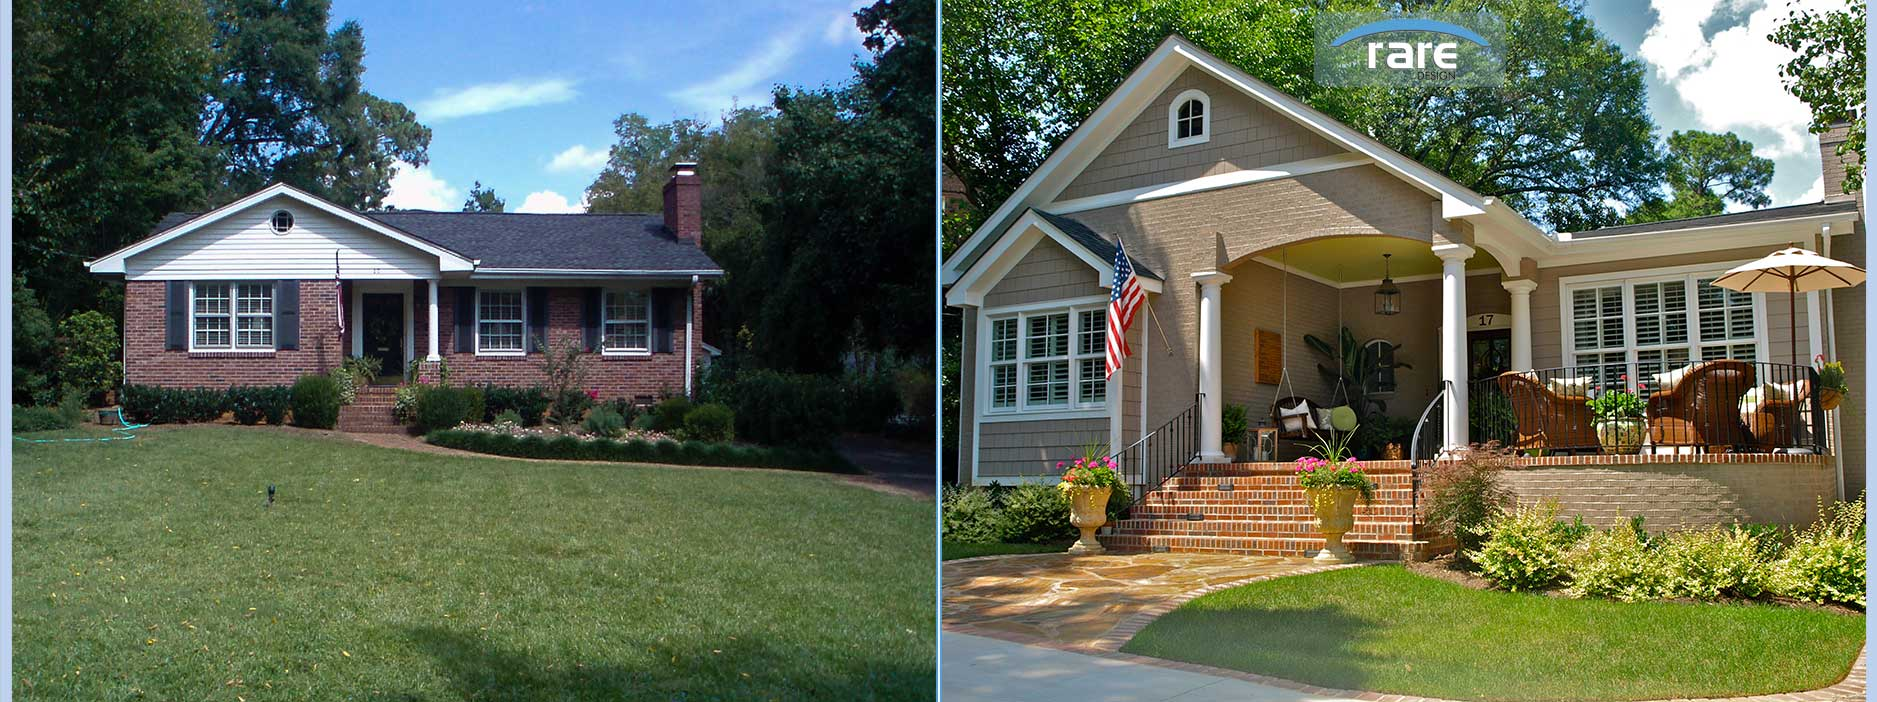 Greenville home remodeling raredesign inc for Redesigning the front of your house